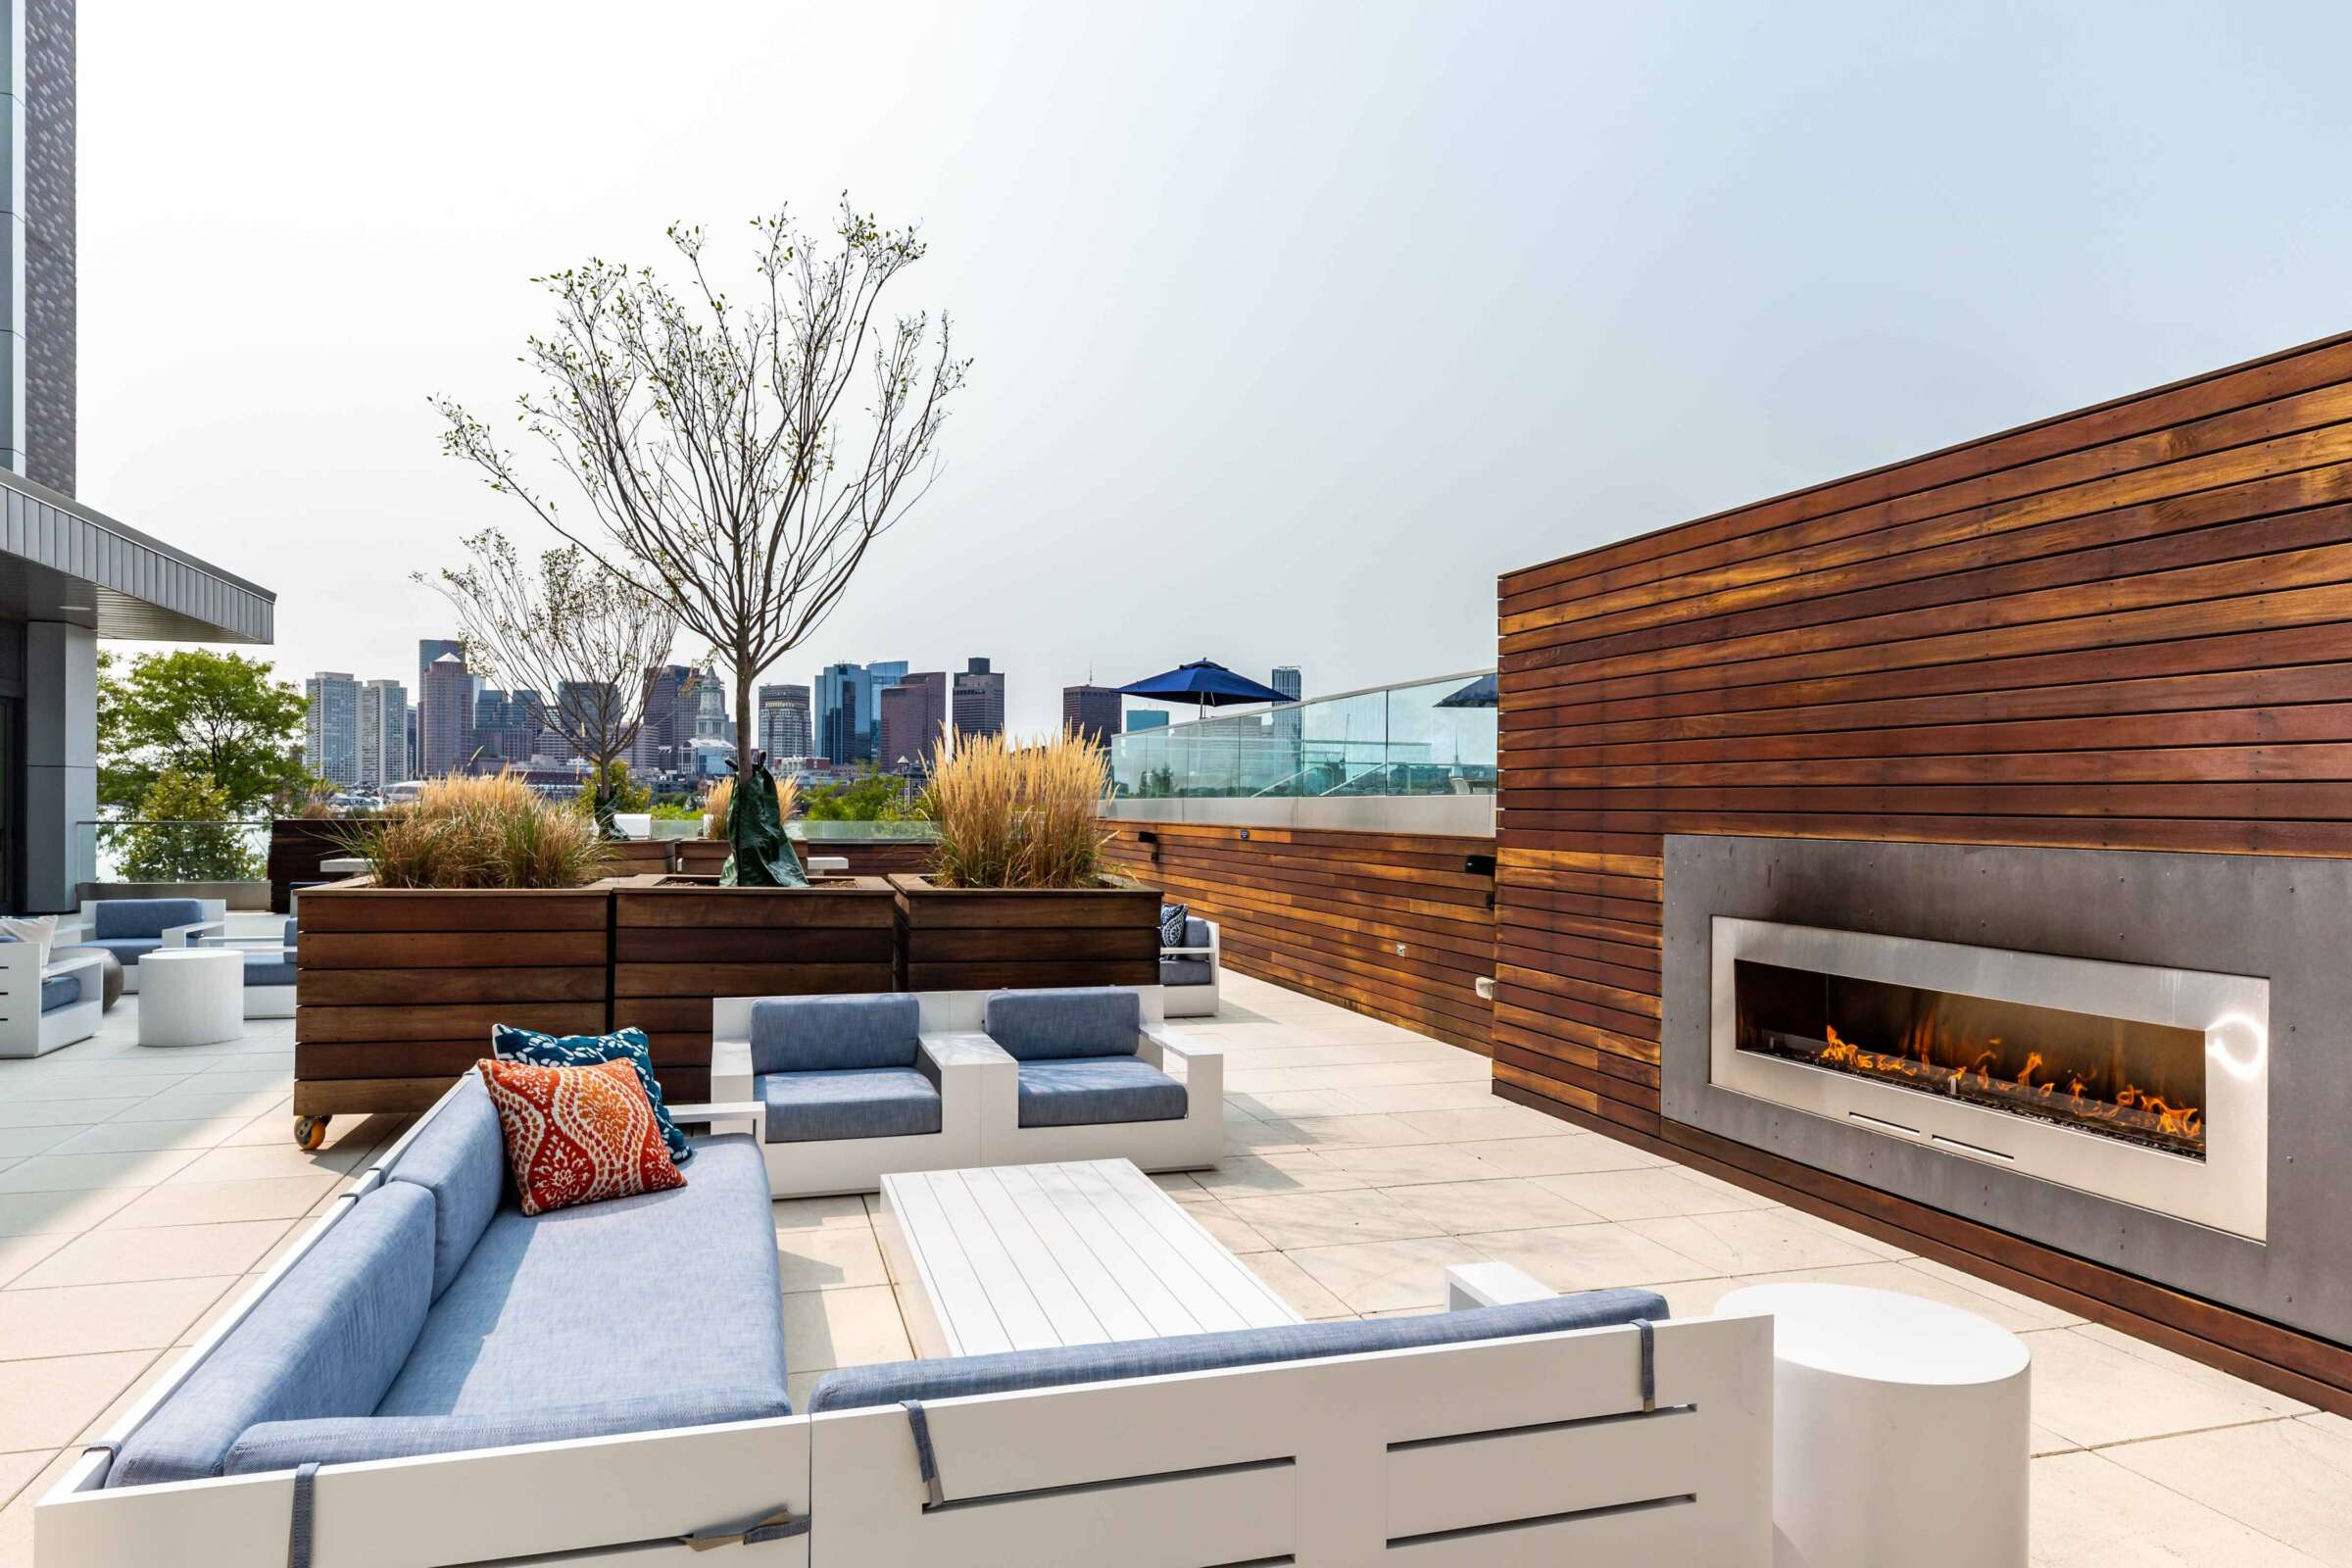 The Eddy East Boston Apartments rooftop terrace with seating and fireplace